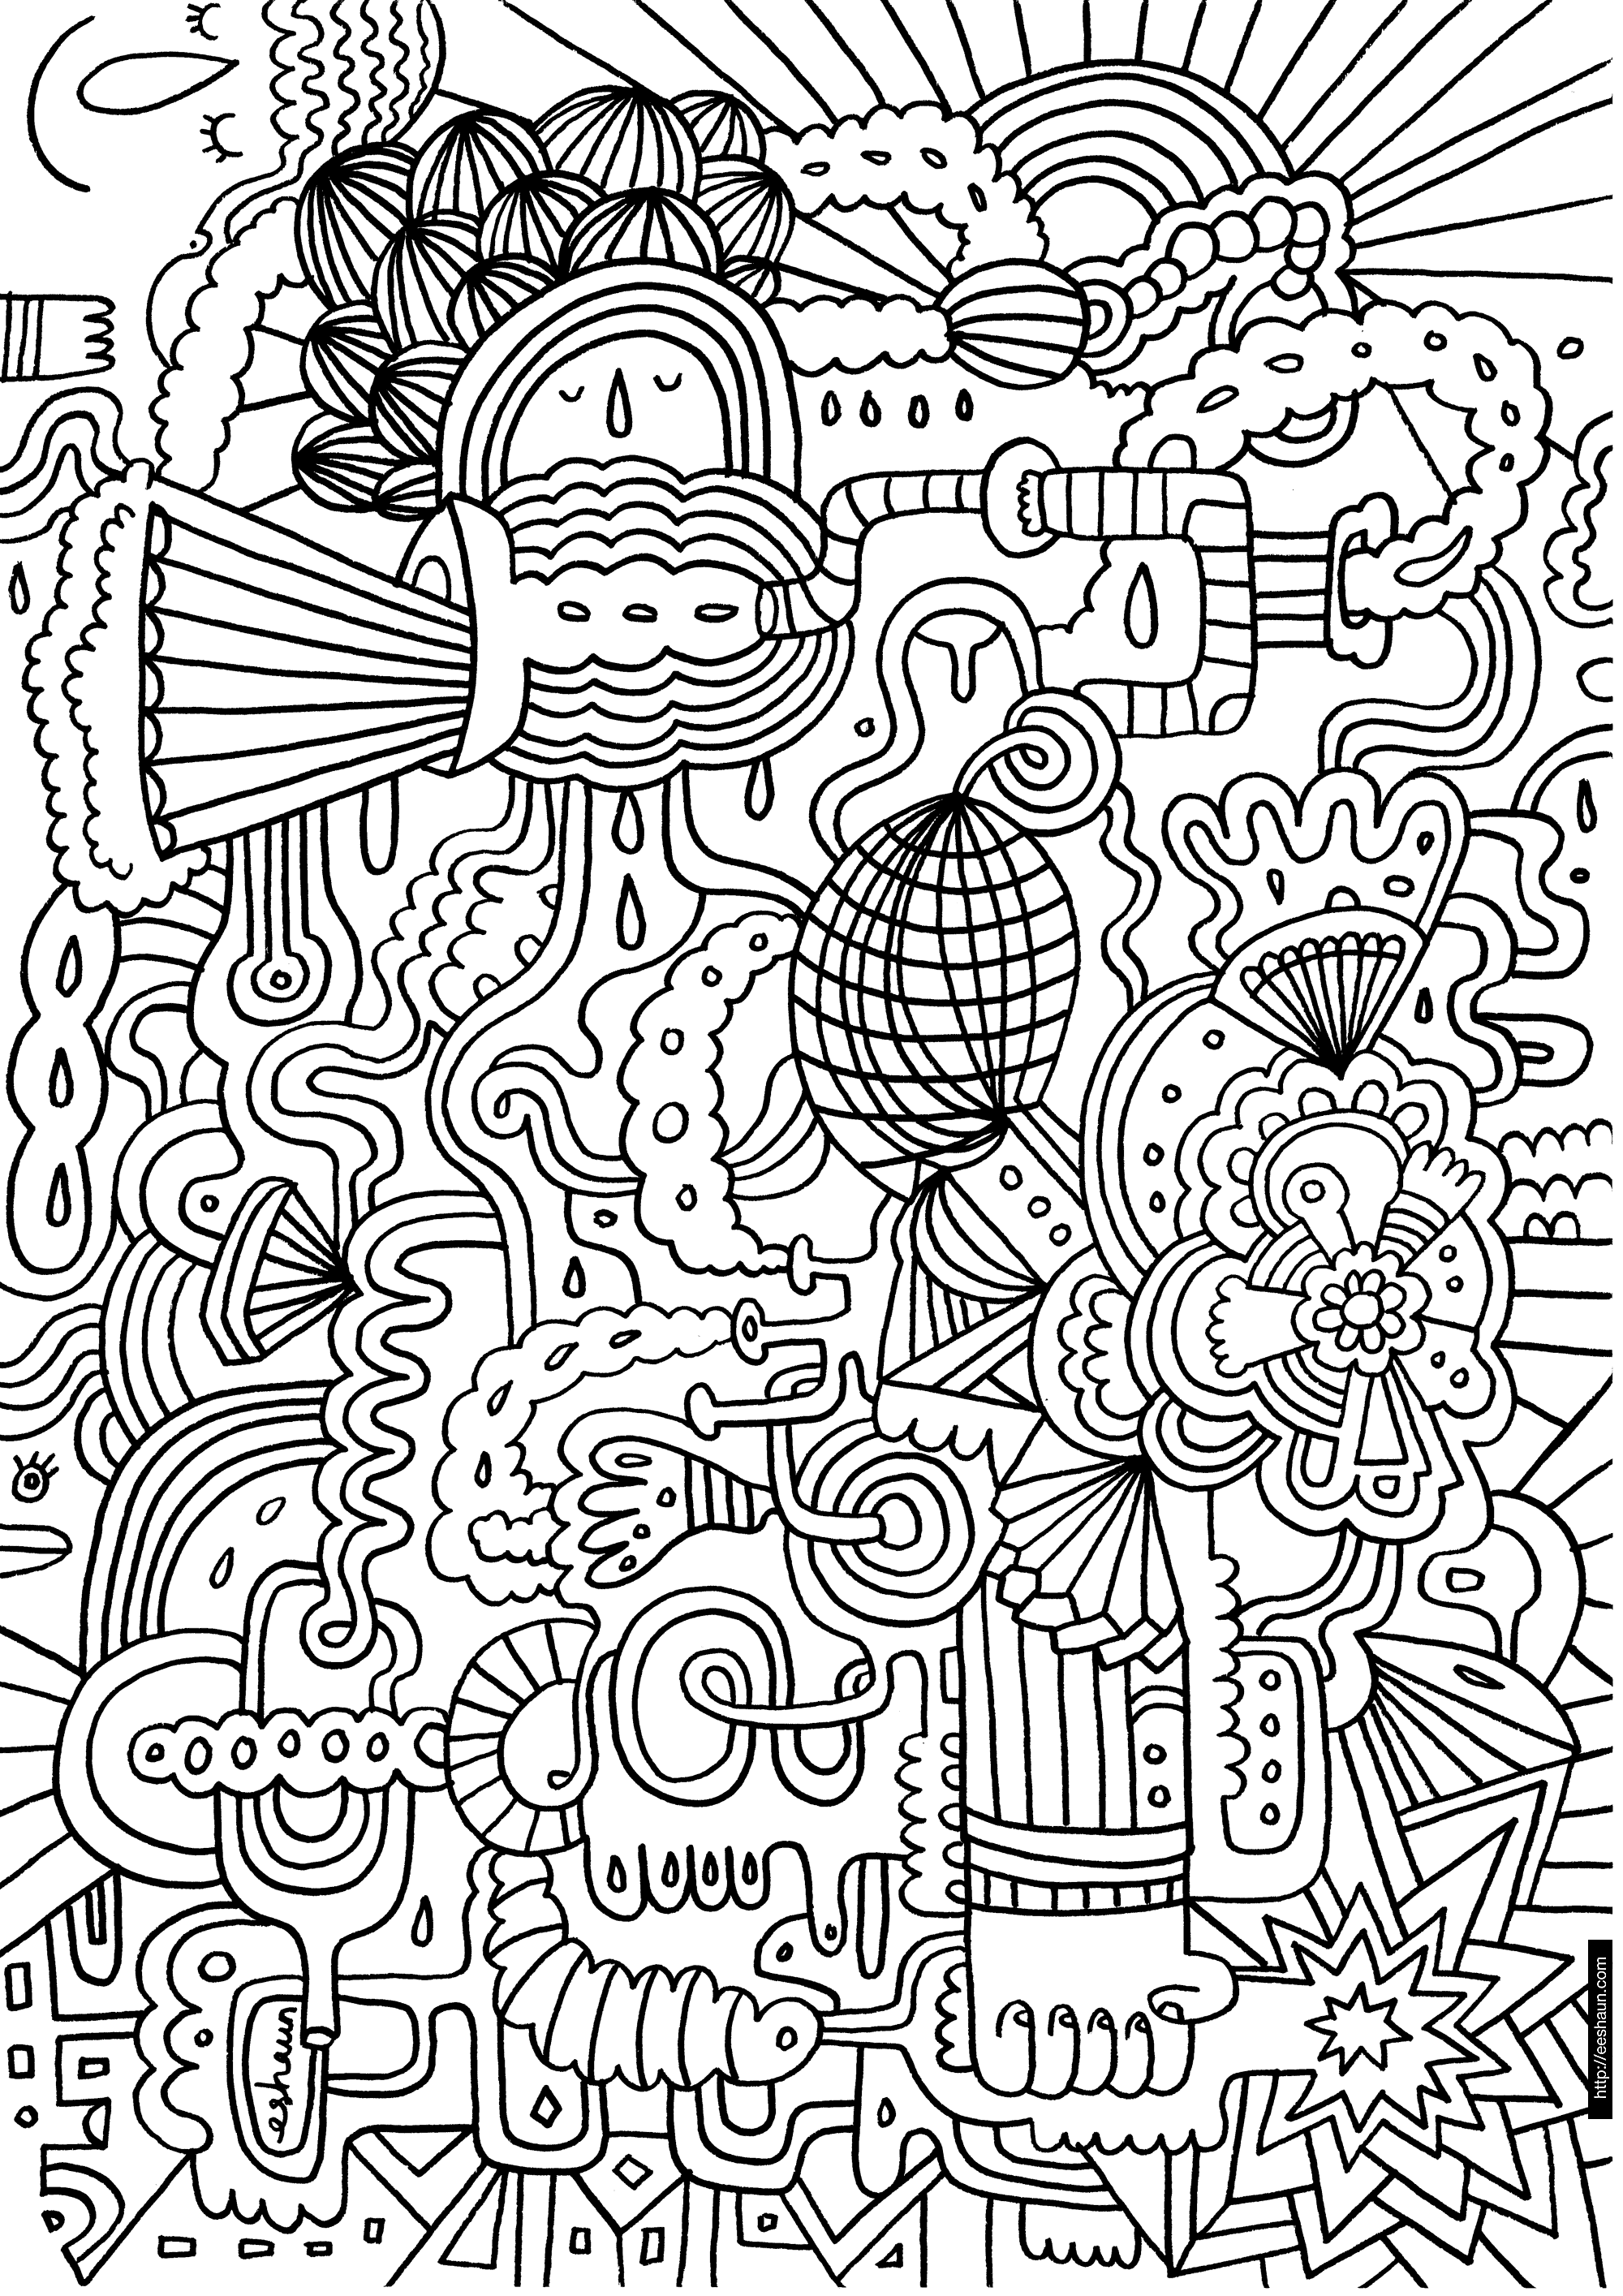 Crayola Coloring Pages for Adults